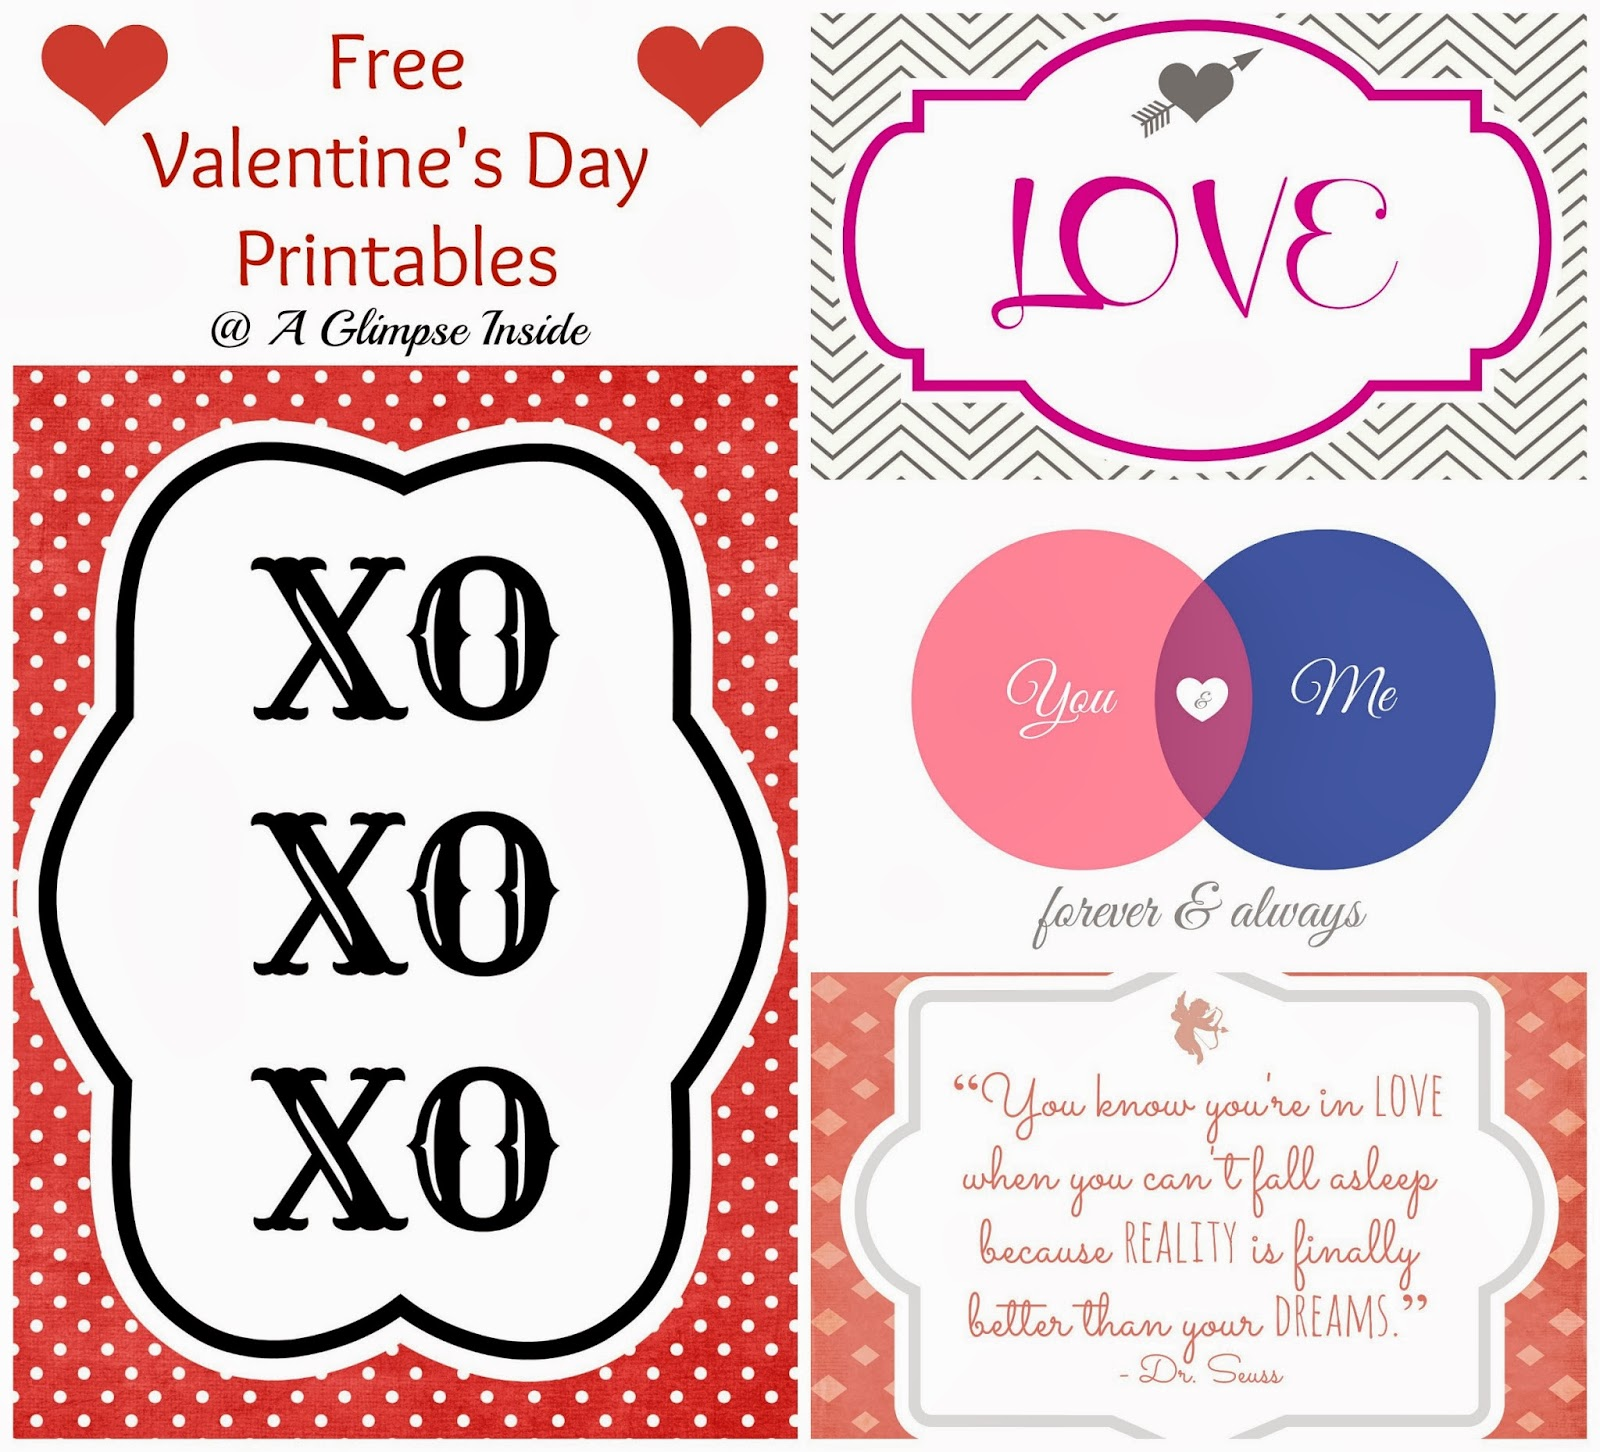 35 free printable valentines yellow bliss road. Black Bedroom Furniture Sets. Home Design Ideas